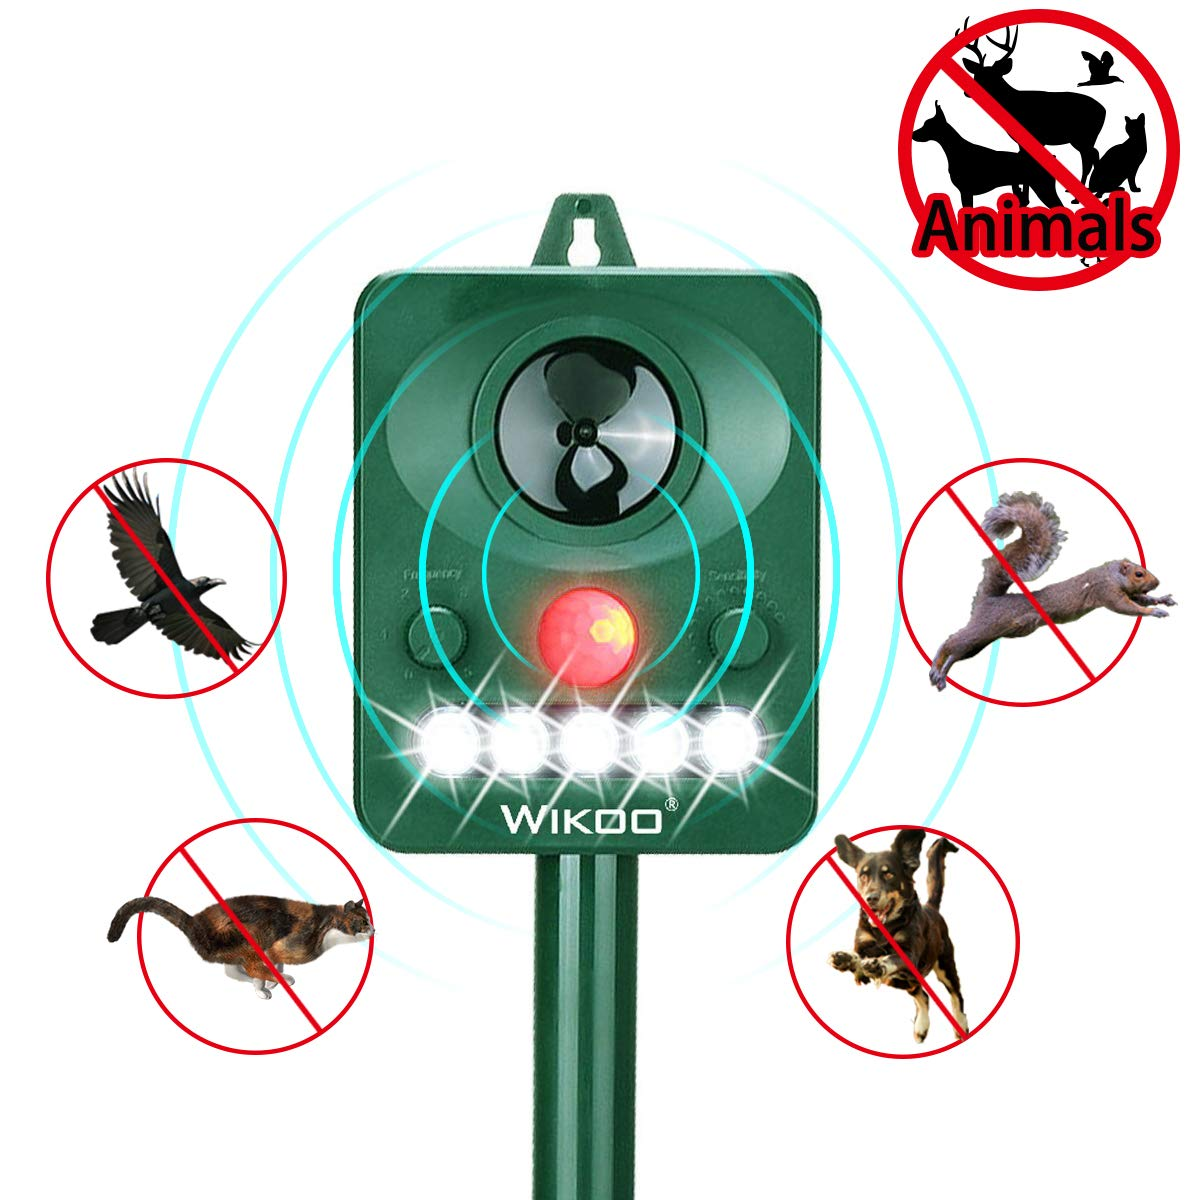 Wikoo Ultrasonic Animal Repeller,Solar Powered repellent,Activated with Motion,Ultrasonic and Flashing LED lights Outdoor Waterproof repellent for Dogs,Cats,Foxes,Mice,Birds,Skunks,Etc.